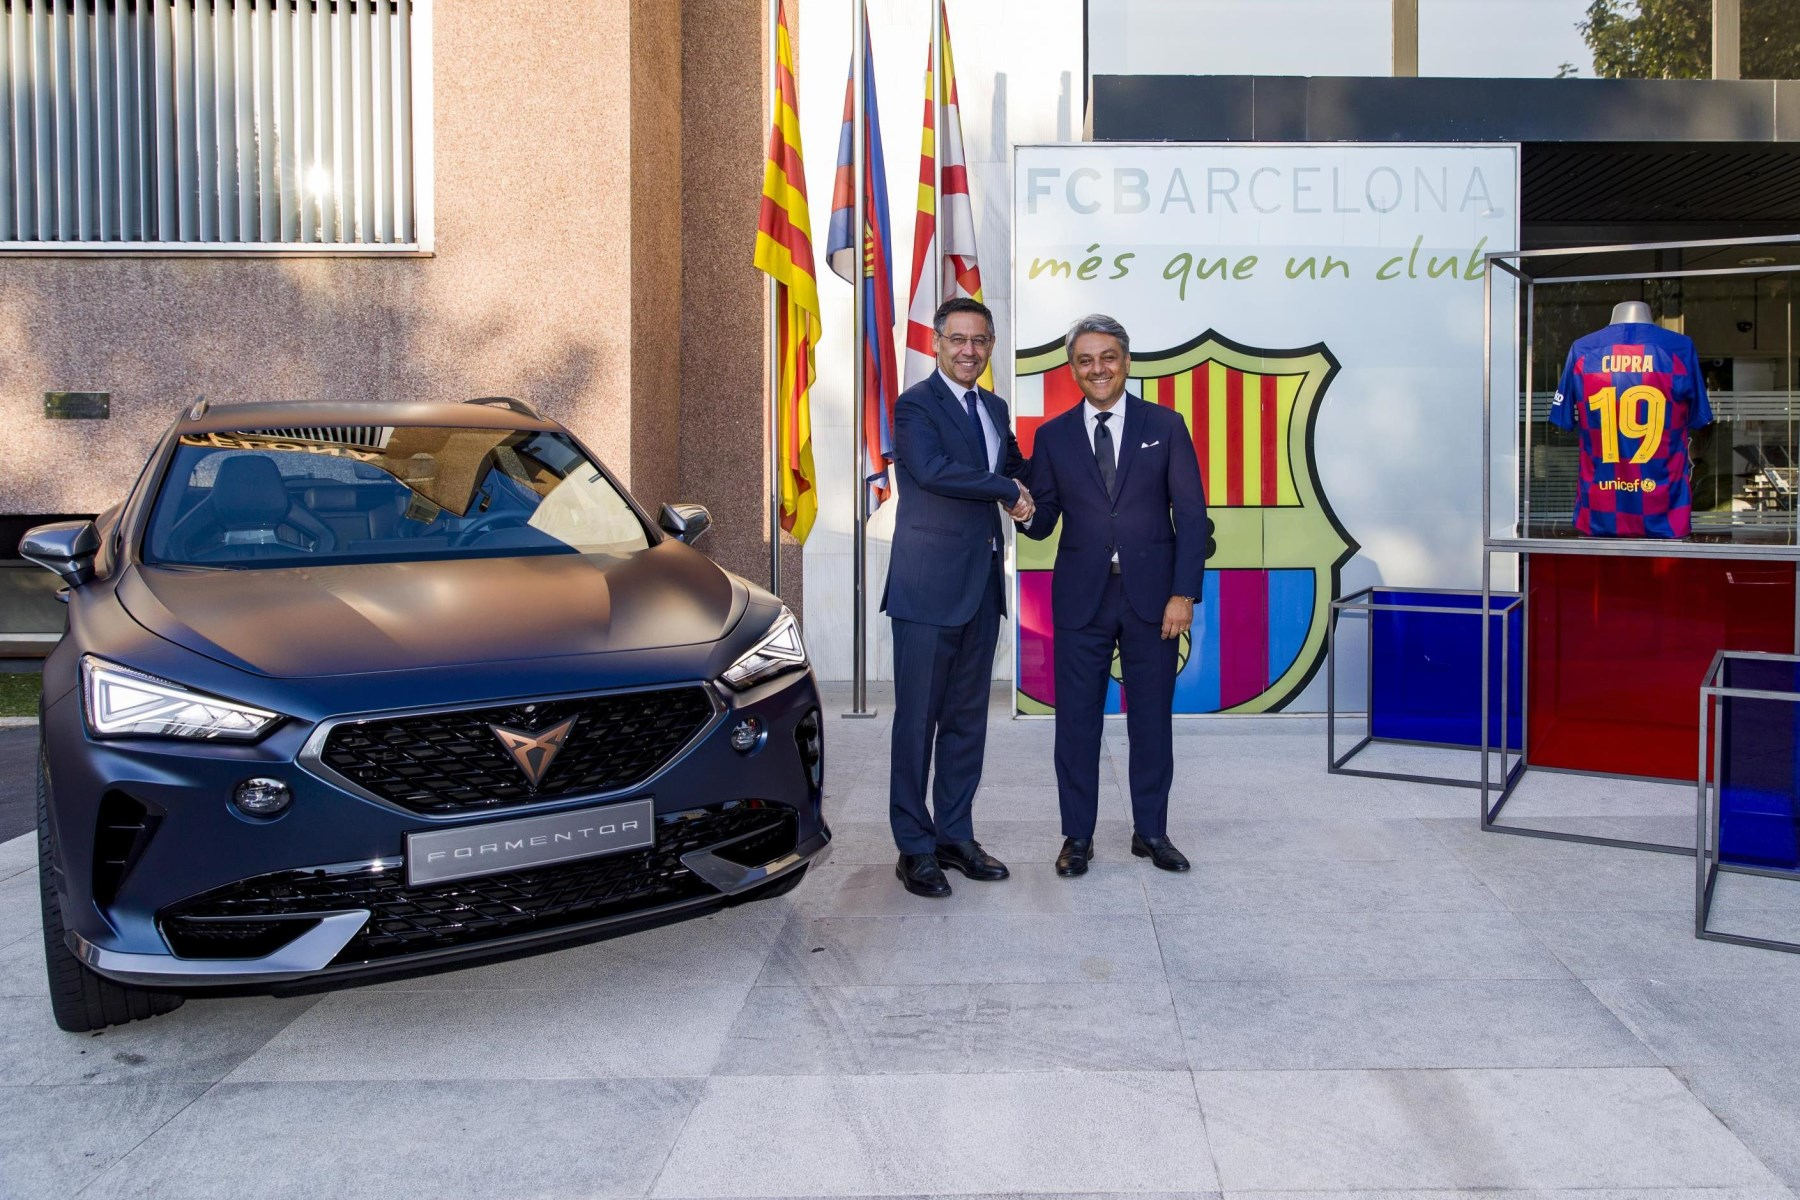 FC Barcelona and CUPRA kick off new partnership